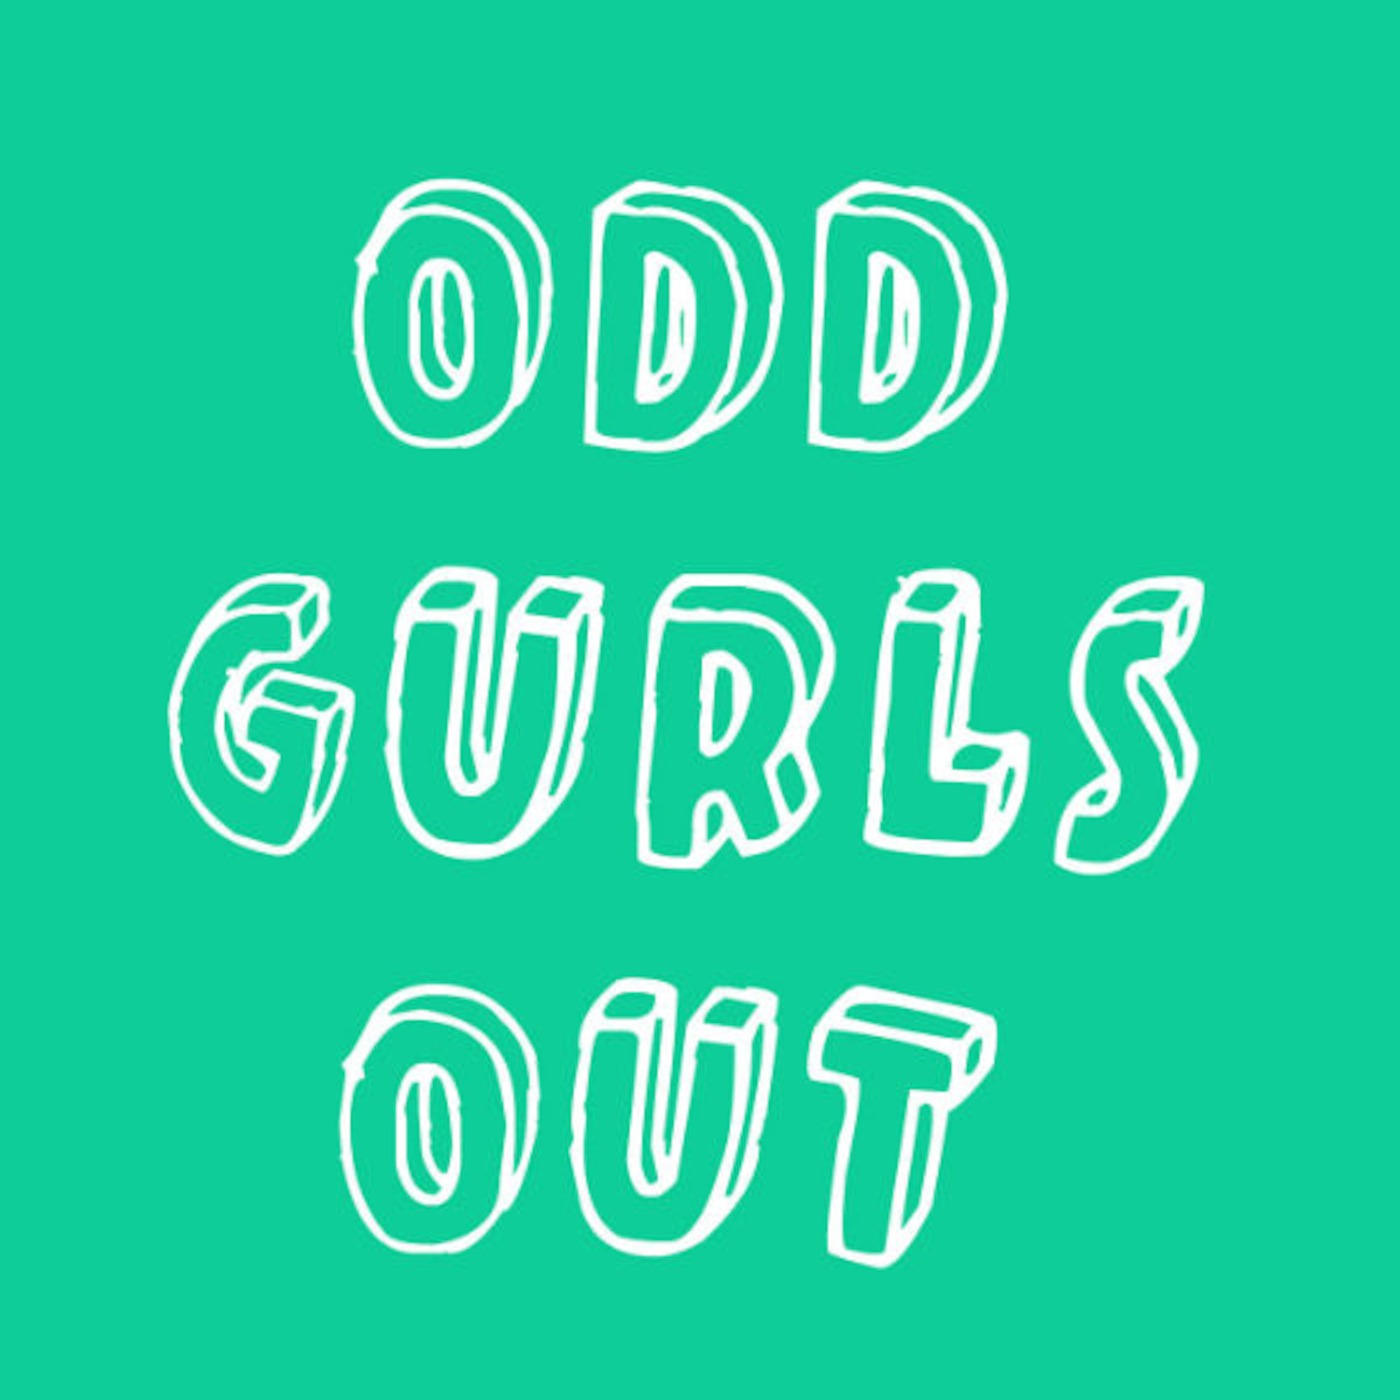 Odd Gurls Out